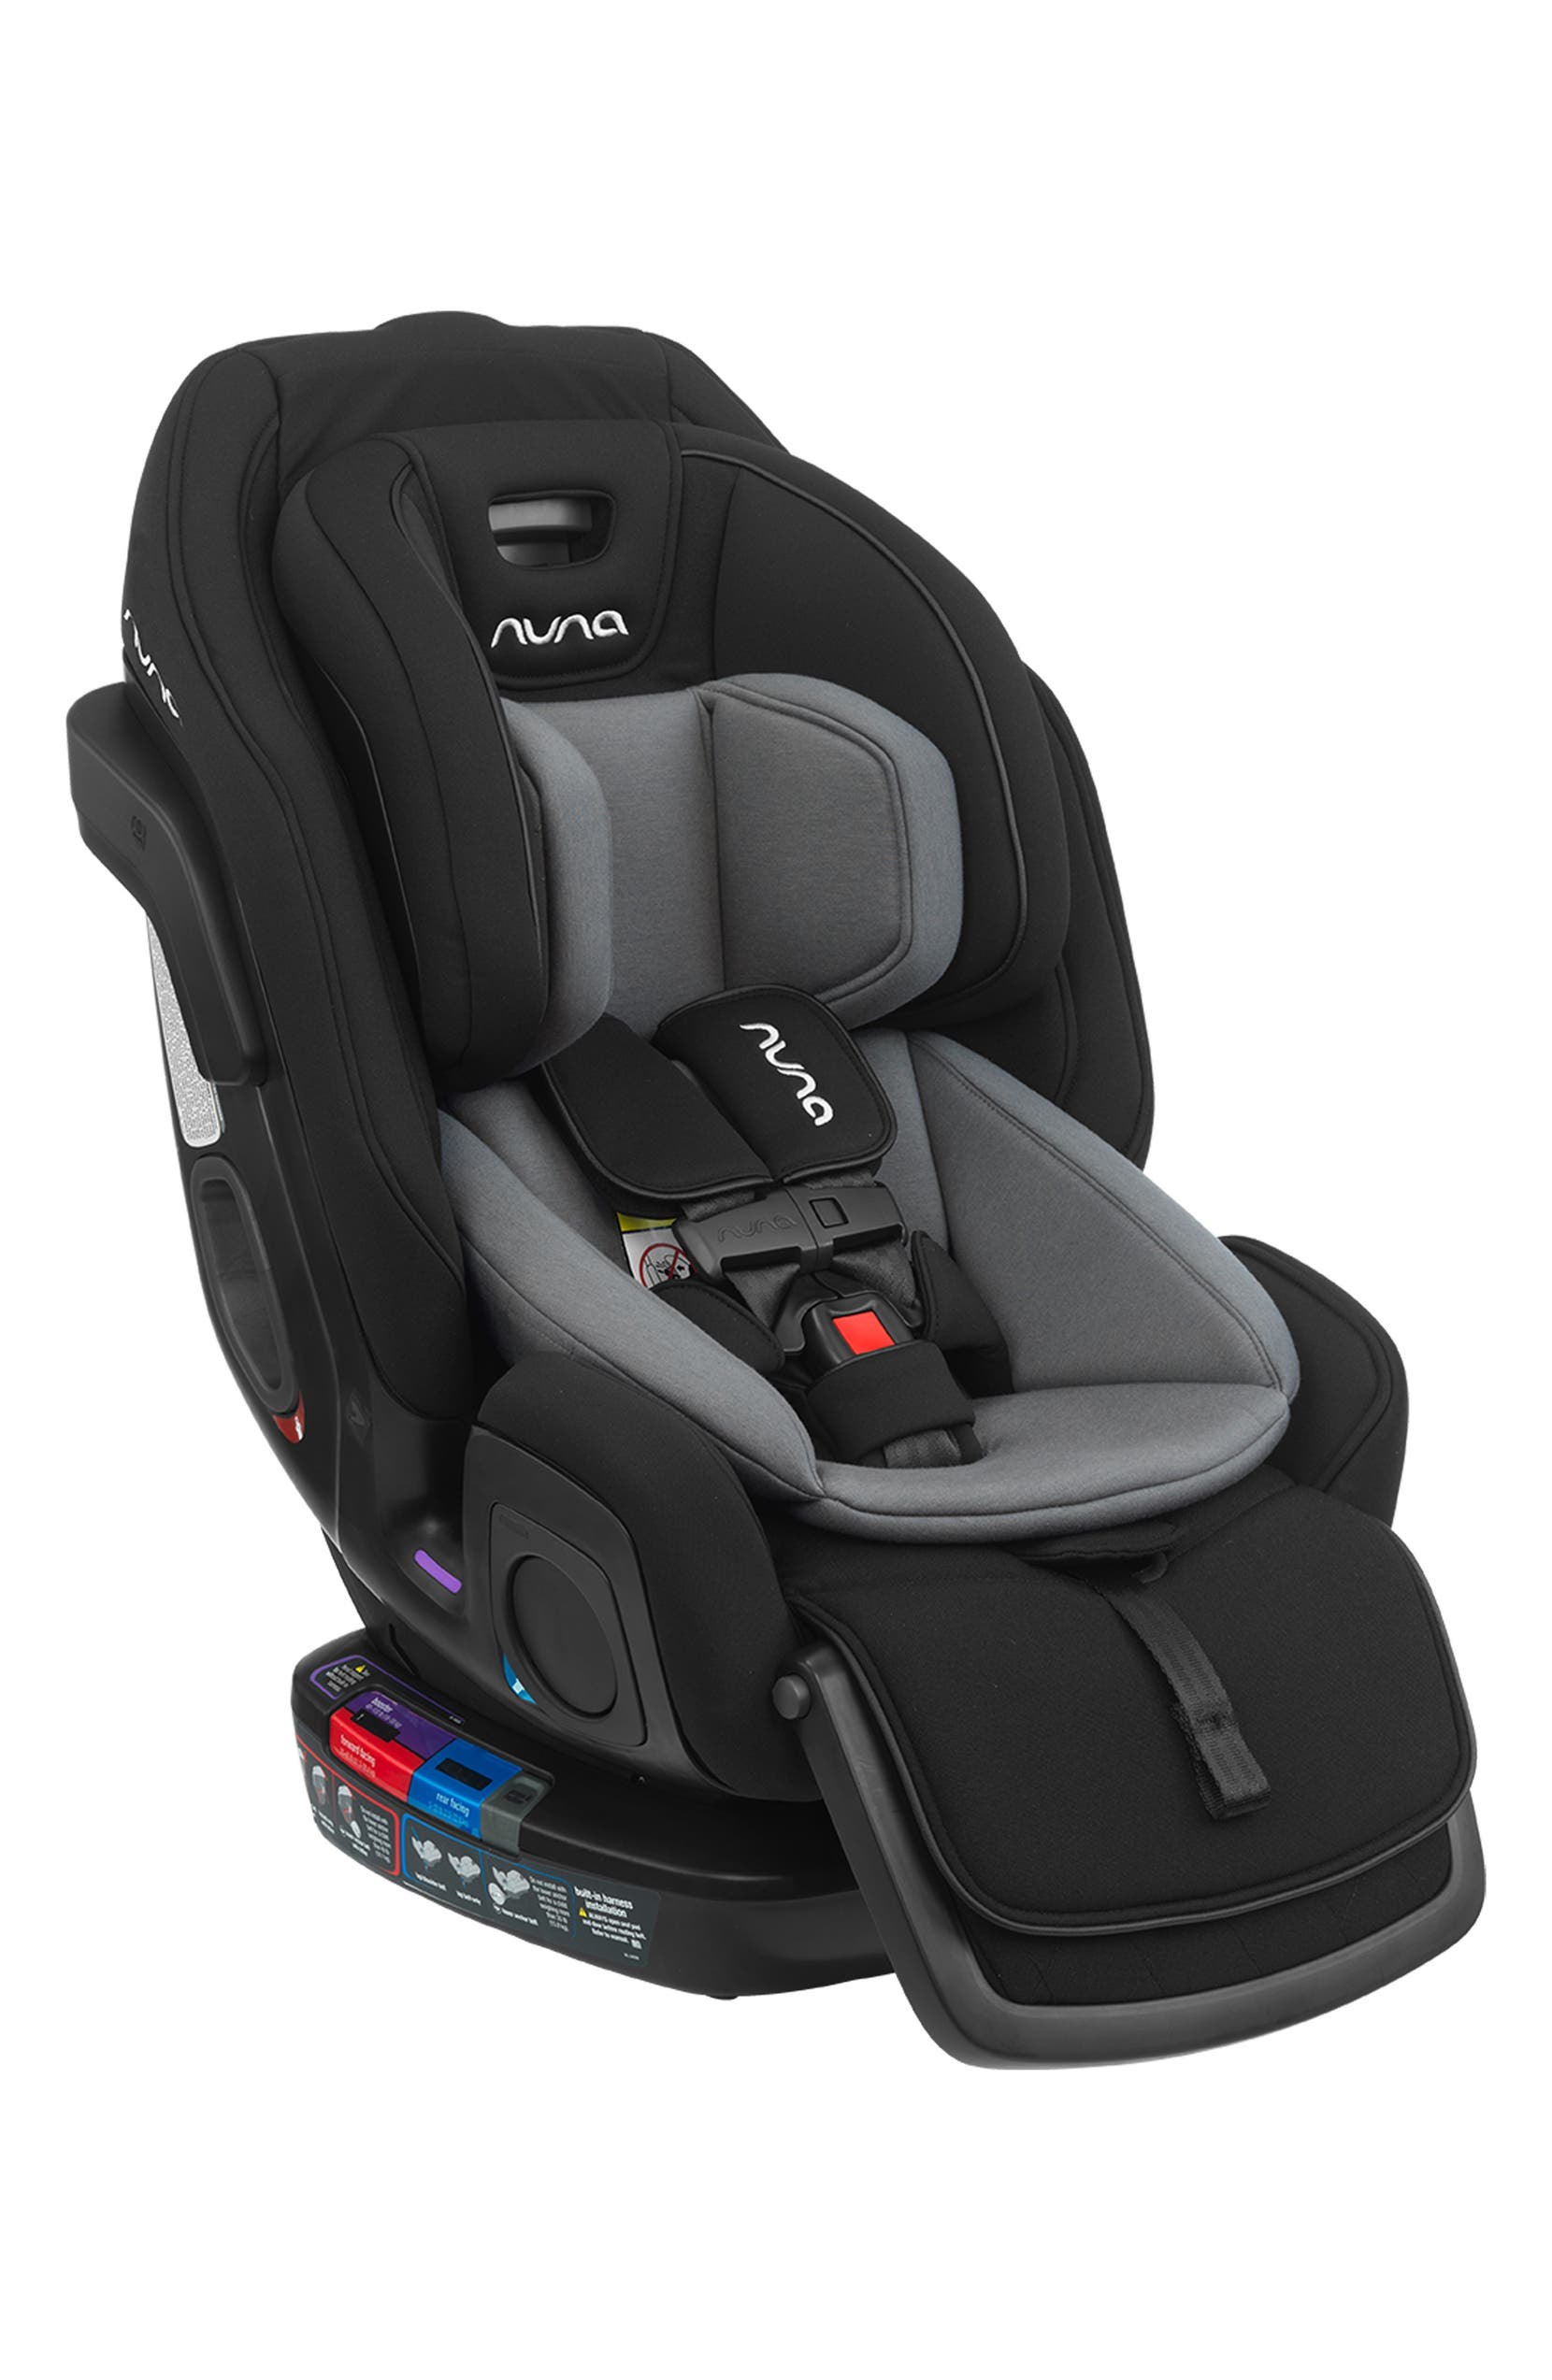 Nuna Exec All In One Car Seat Nordstrom Exclusive Nordstrom